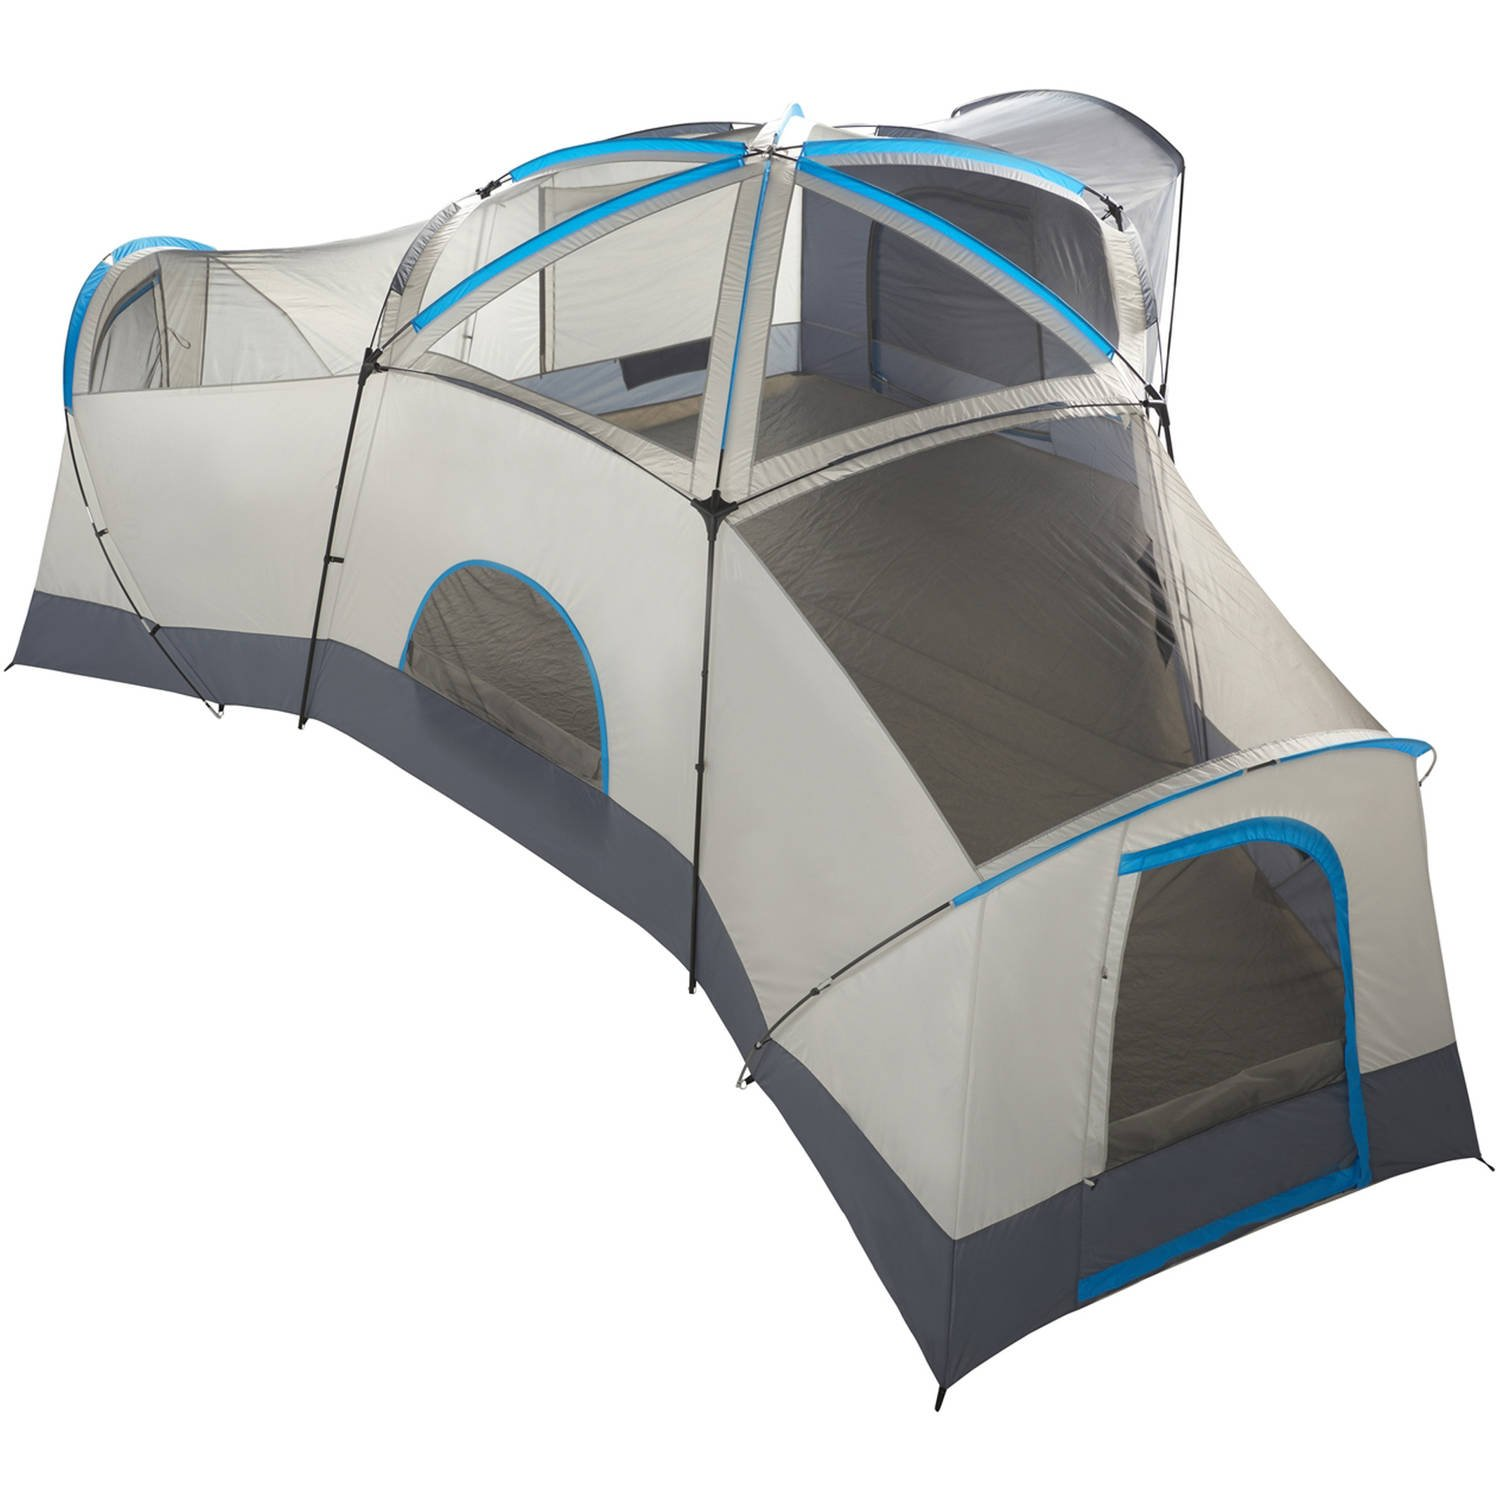 Spacious Family Sized 16-Person Weather Resistant Ozark Trail 23.5 x 18.5 Cabin Camping Tent, Gray and Blue